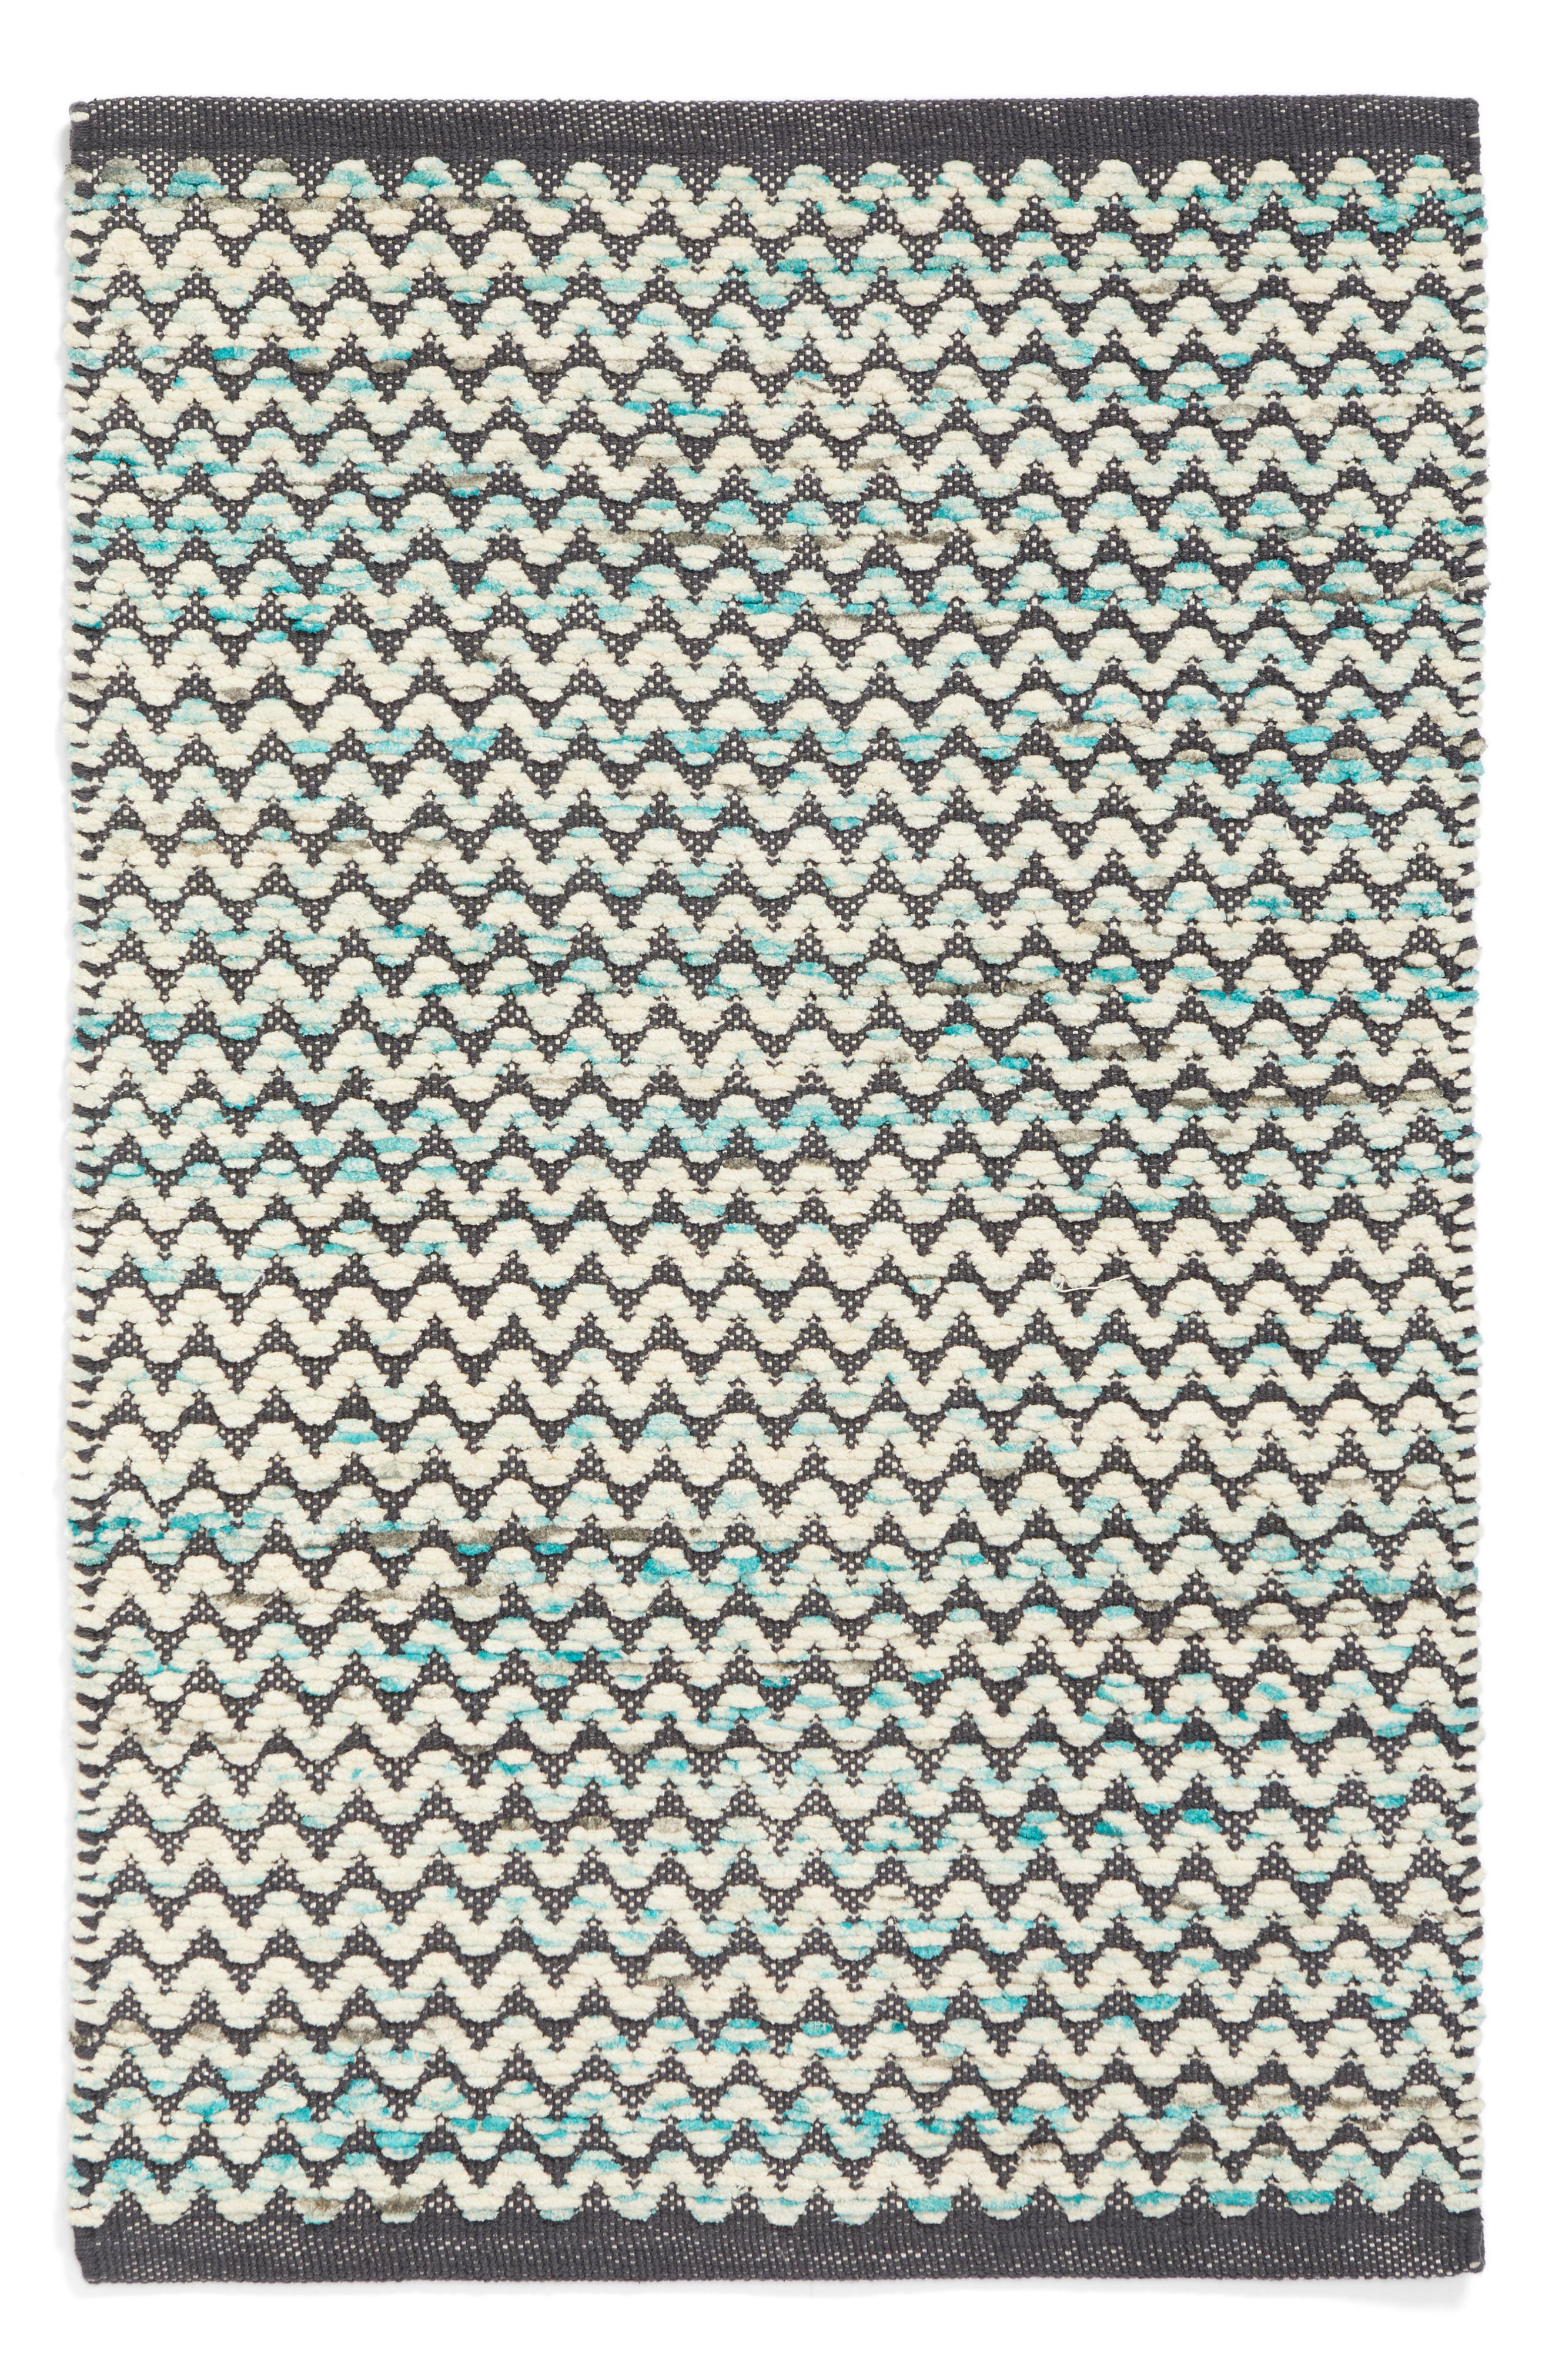 Alternate Image 1 Selected - Nordstrom at Home Chevron Handwoven Area Rug